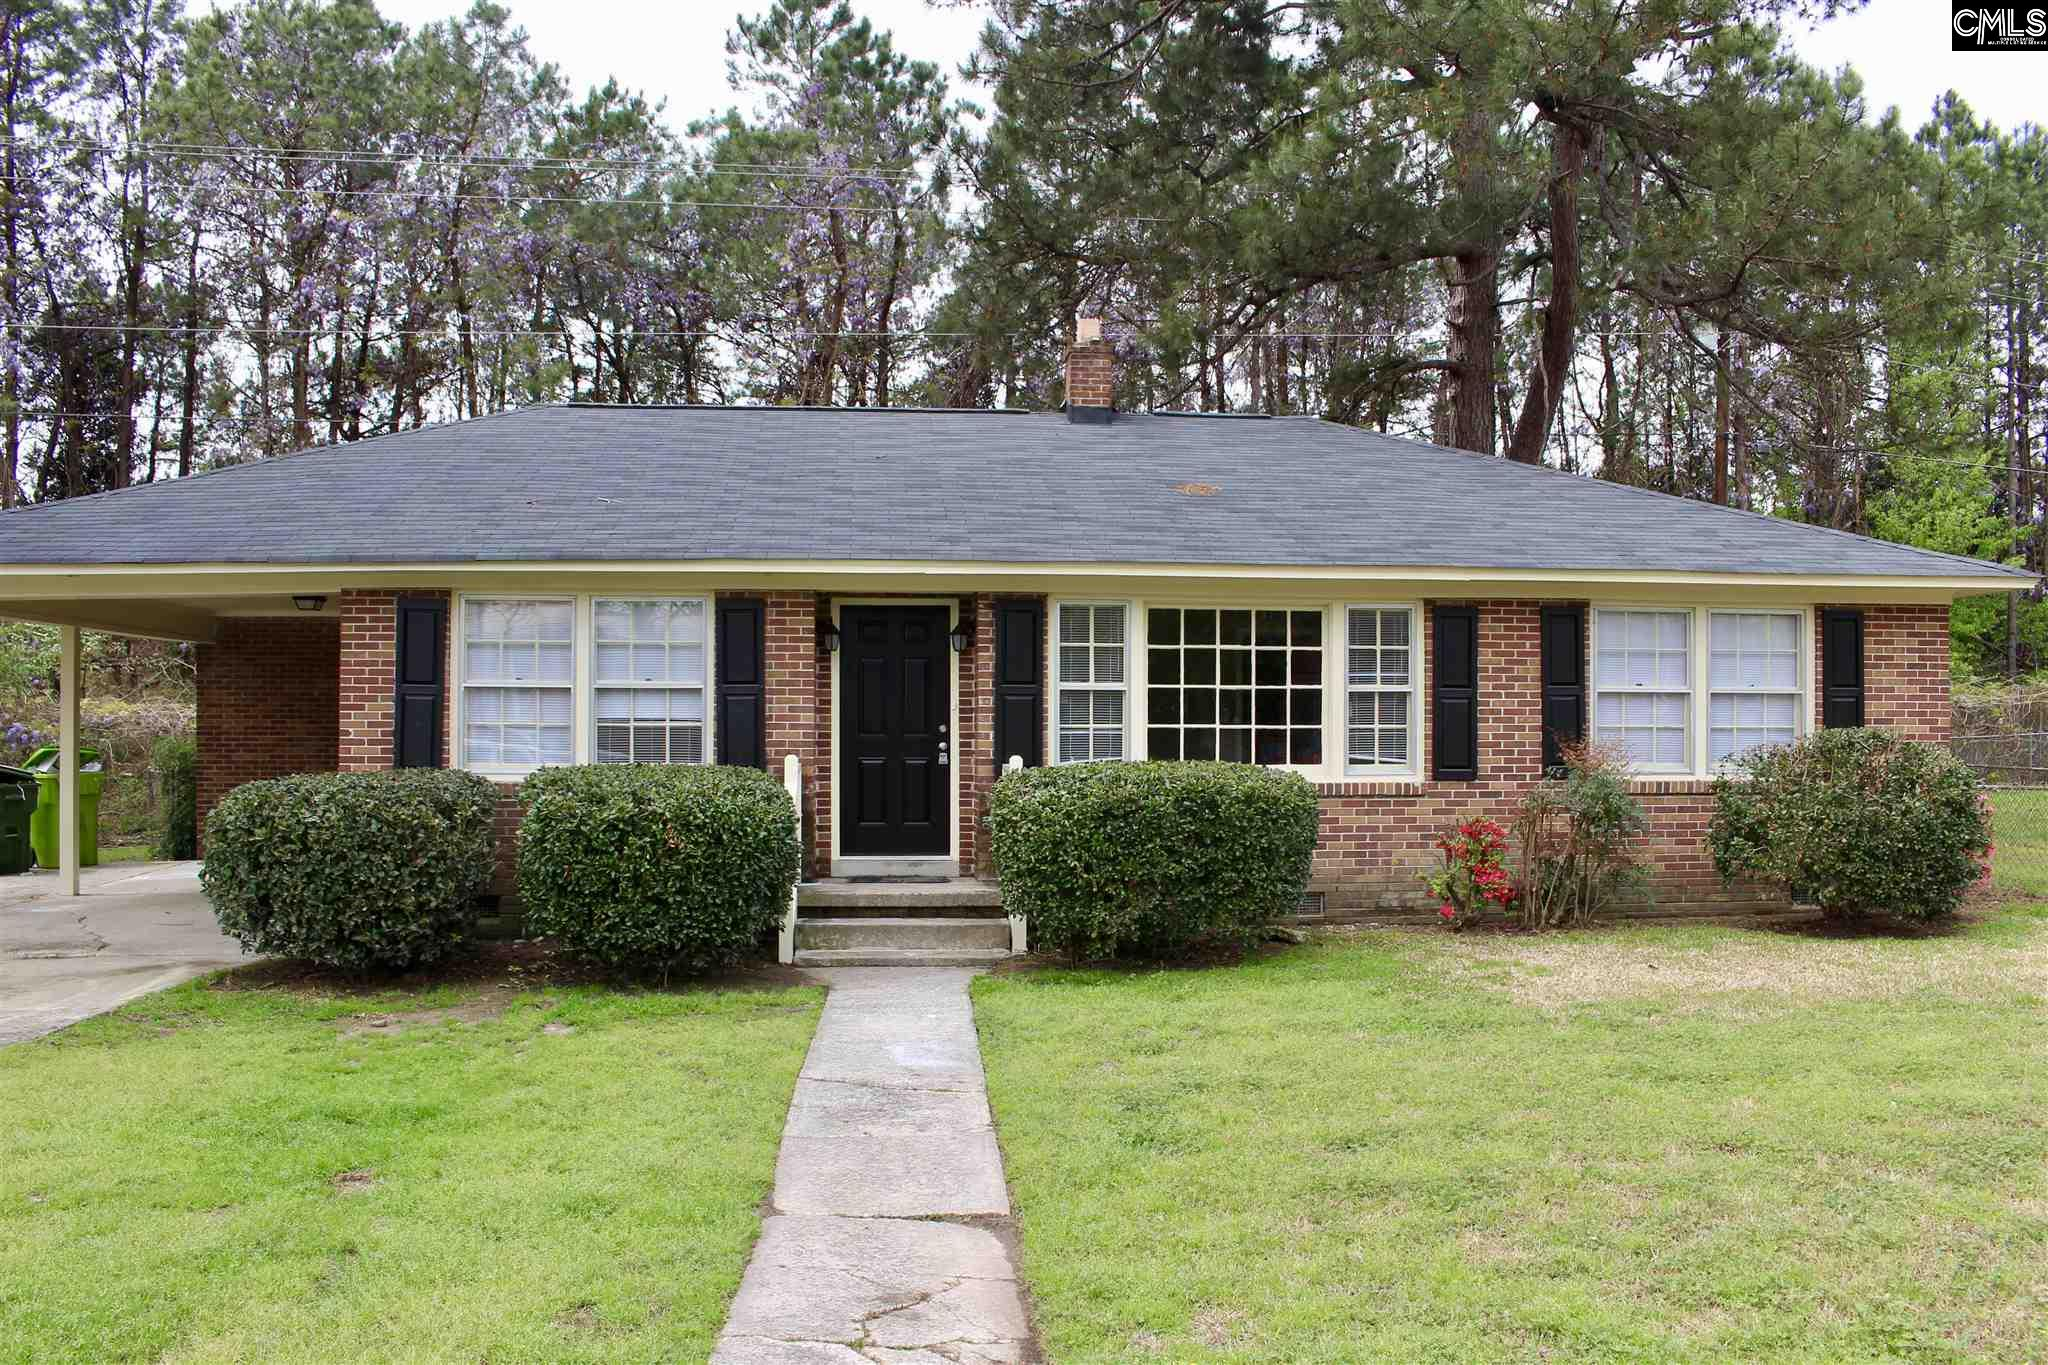 Move in ready brick ranch located in Brennan school district. Minutes from VA/ USC medical school, downtown, and Ft. Jackson. All new appliances, refinished hardwoods, updated kitchen and bathrooms. Granite countertops, termite bond & new HVAC & ducts. This home will not last for long so call and schedule your private showing today!